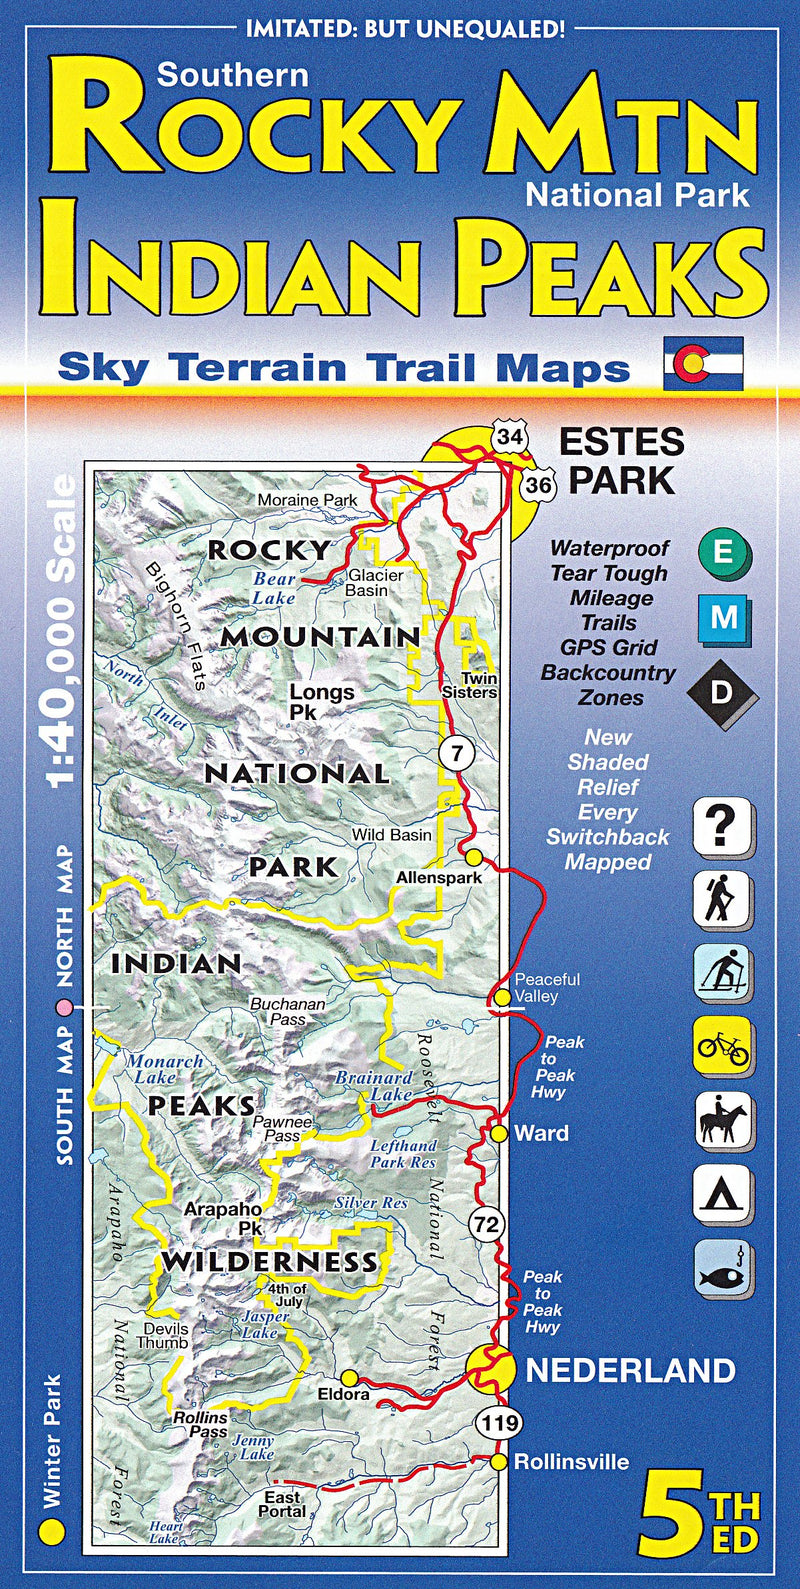 Cover of Southern Rocky Mountain National Park and Indian Peaks Hiking Map by Sky Terrain